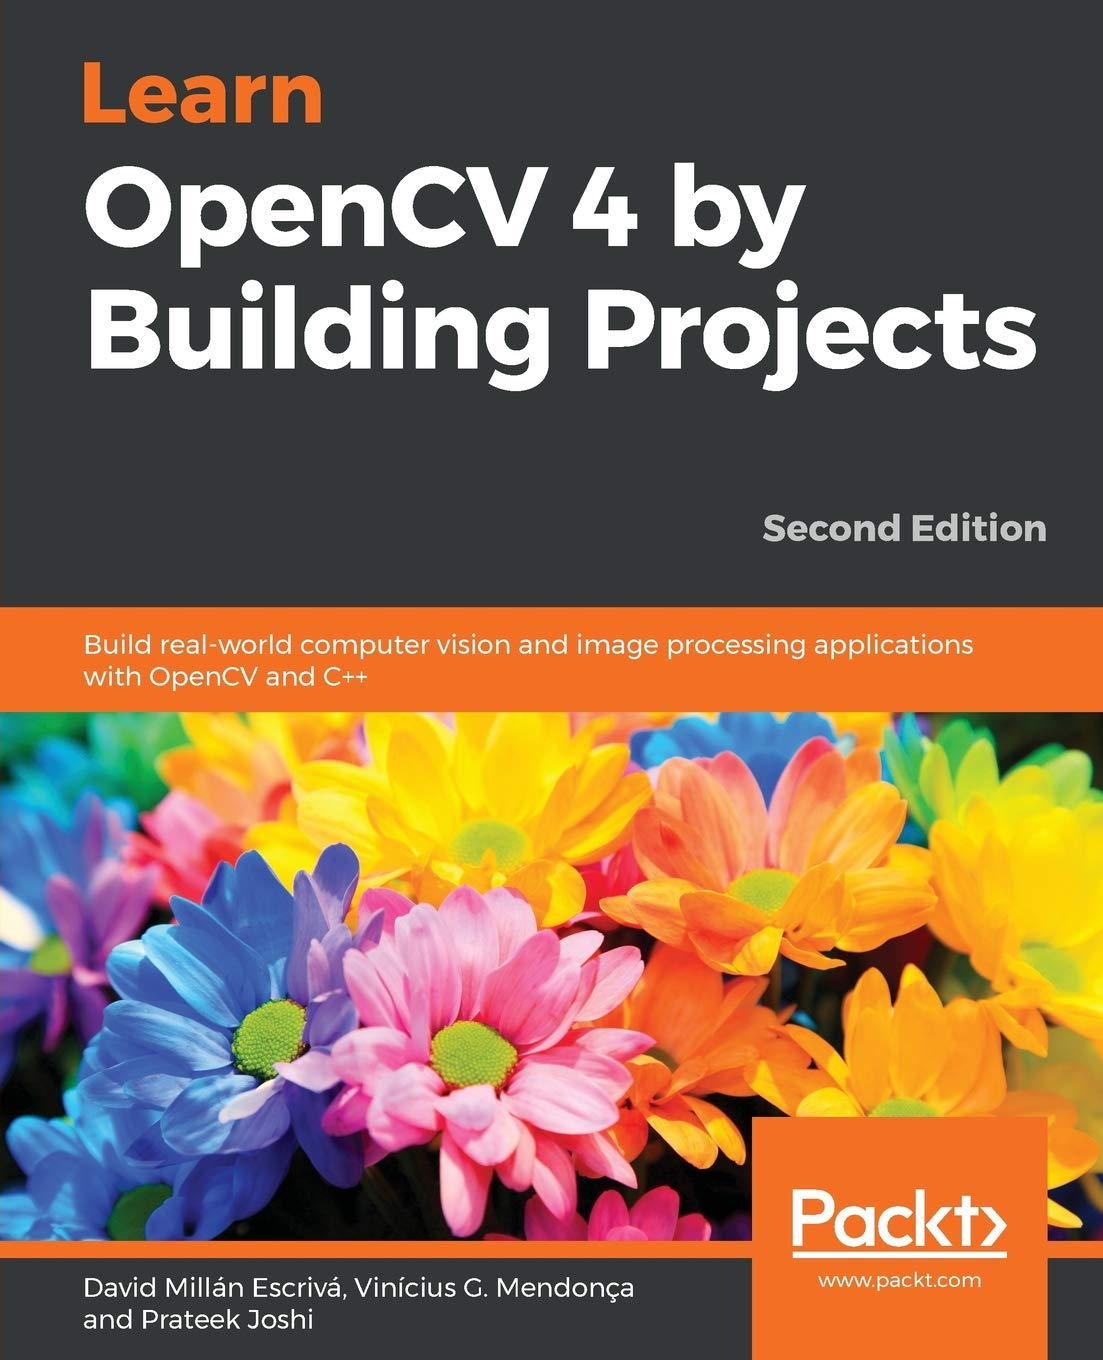 Learn OpenCV 4 by Building Projects: Build real-world